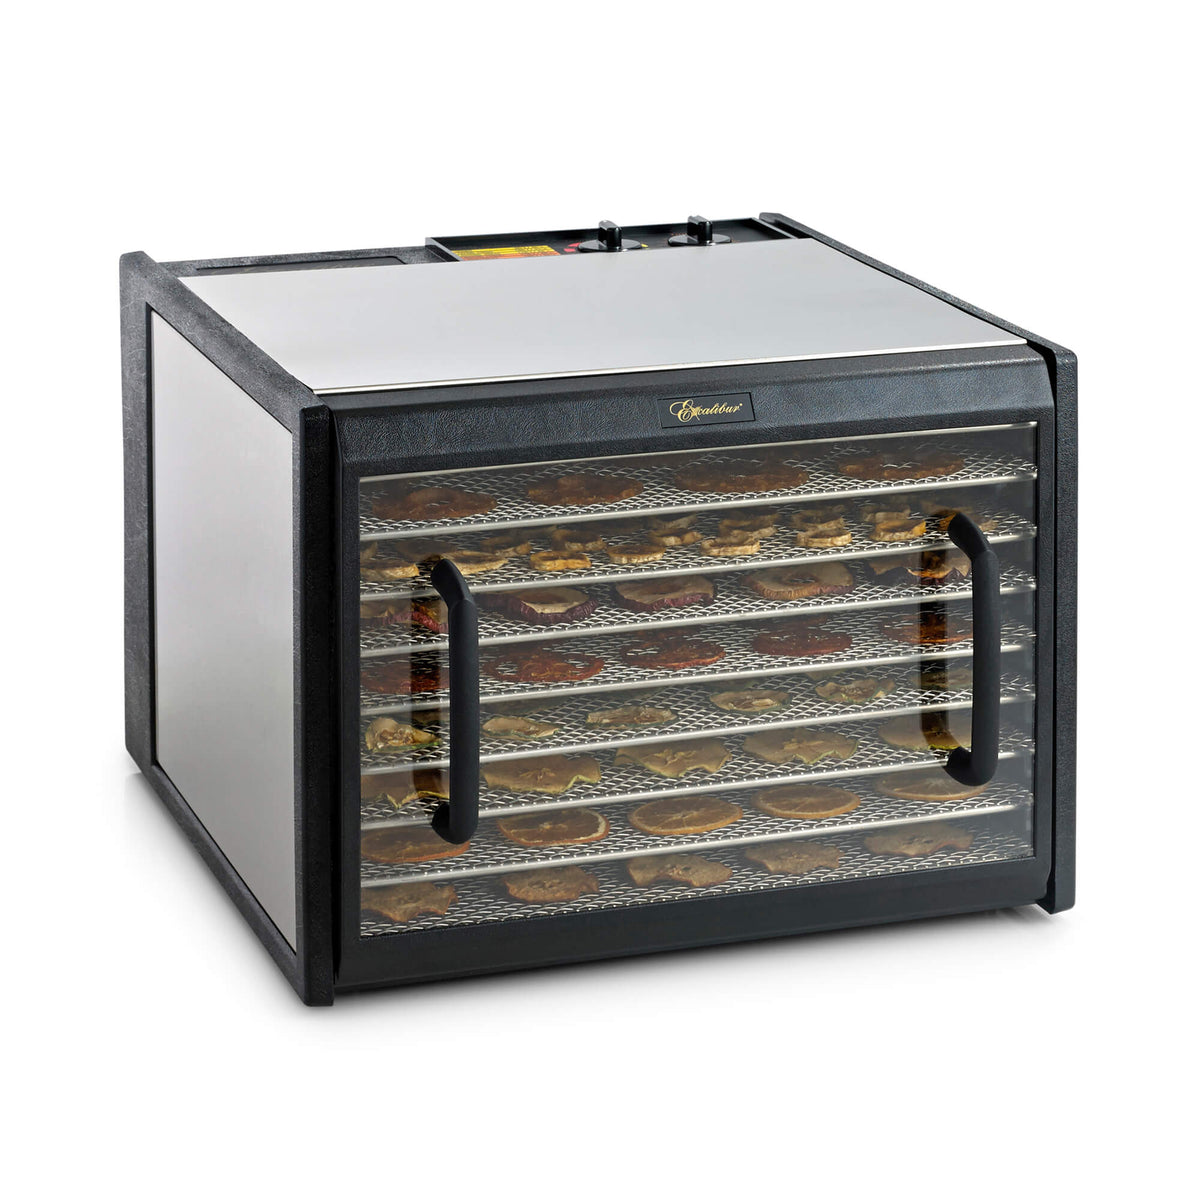 Excalibur D902CDSHD 9 tray stainless steel dehydrator with clear door closed and food on the trays.